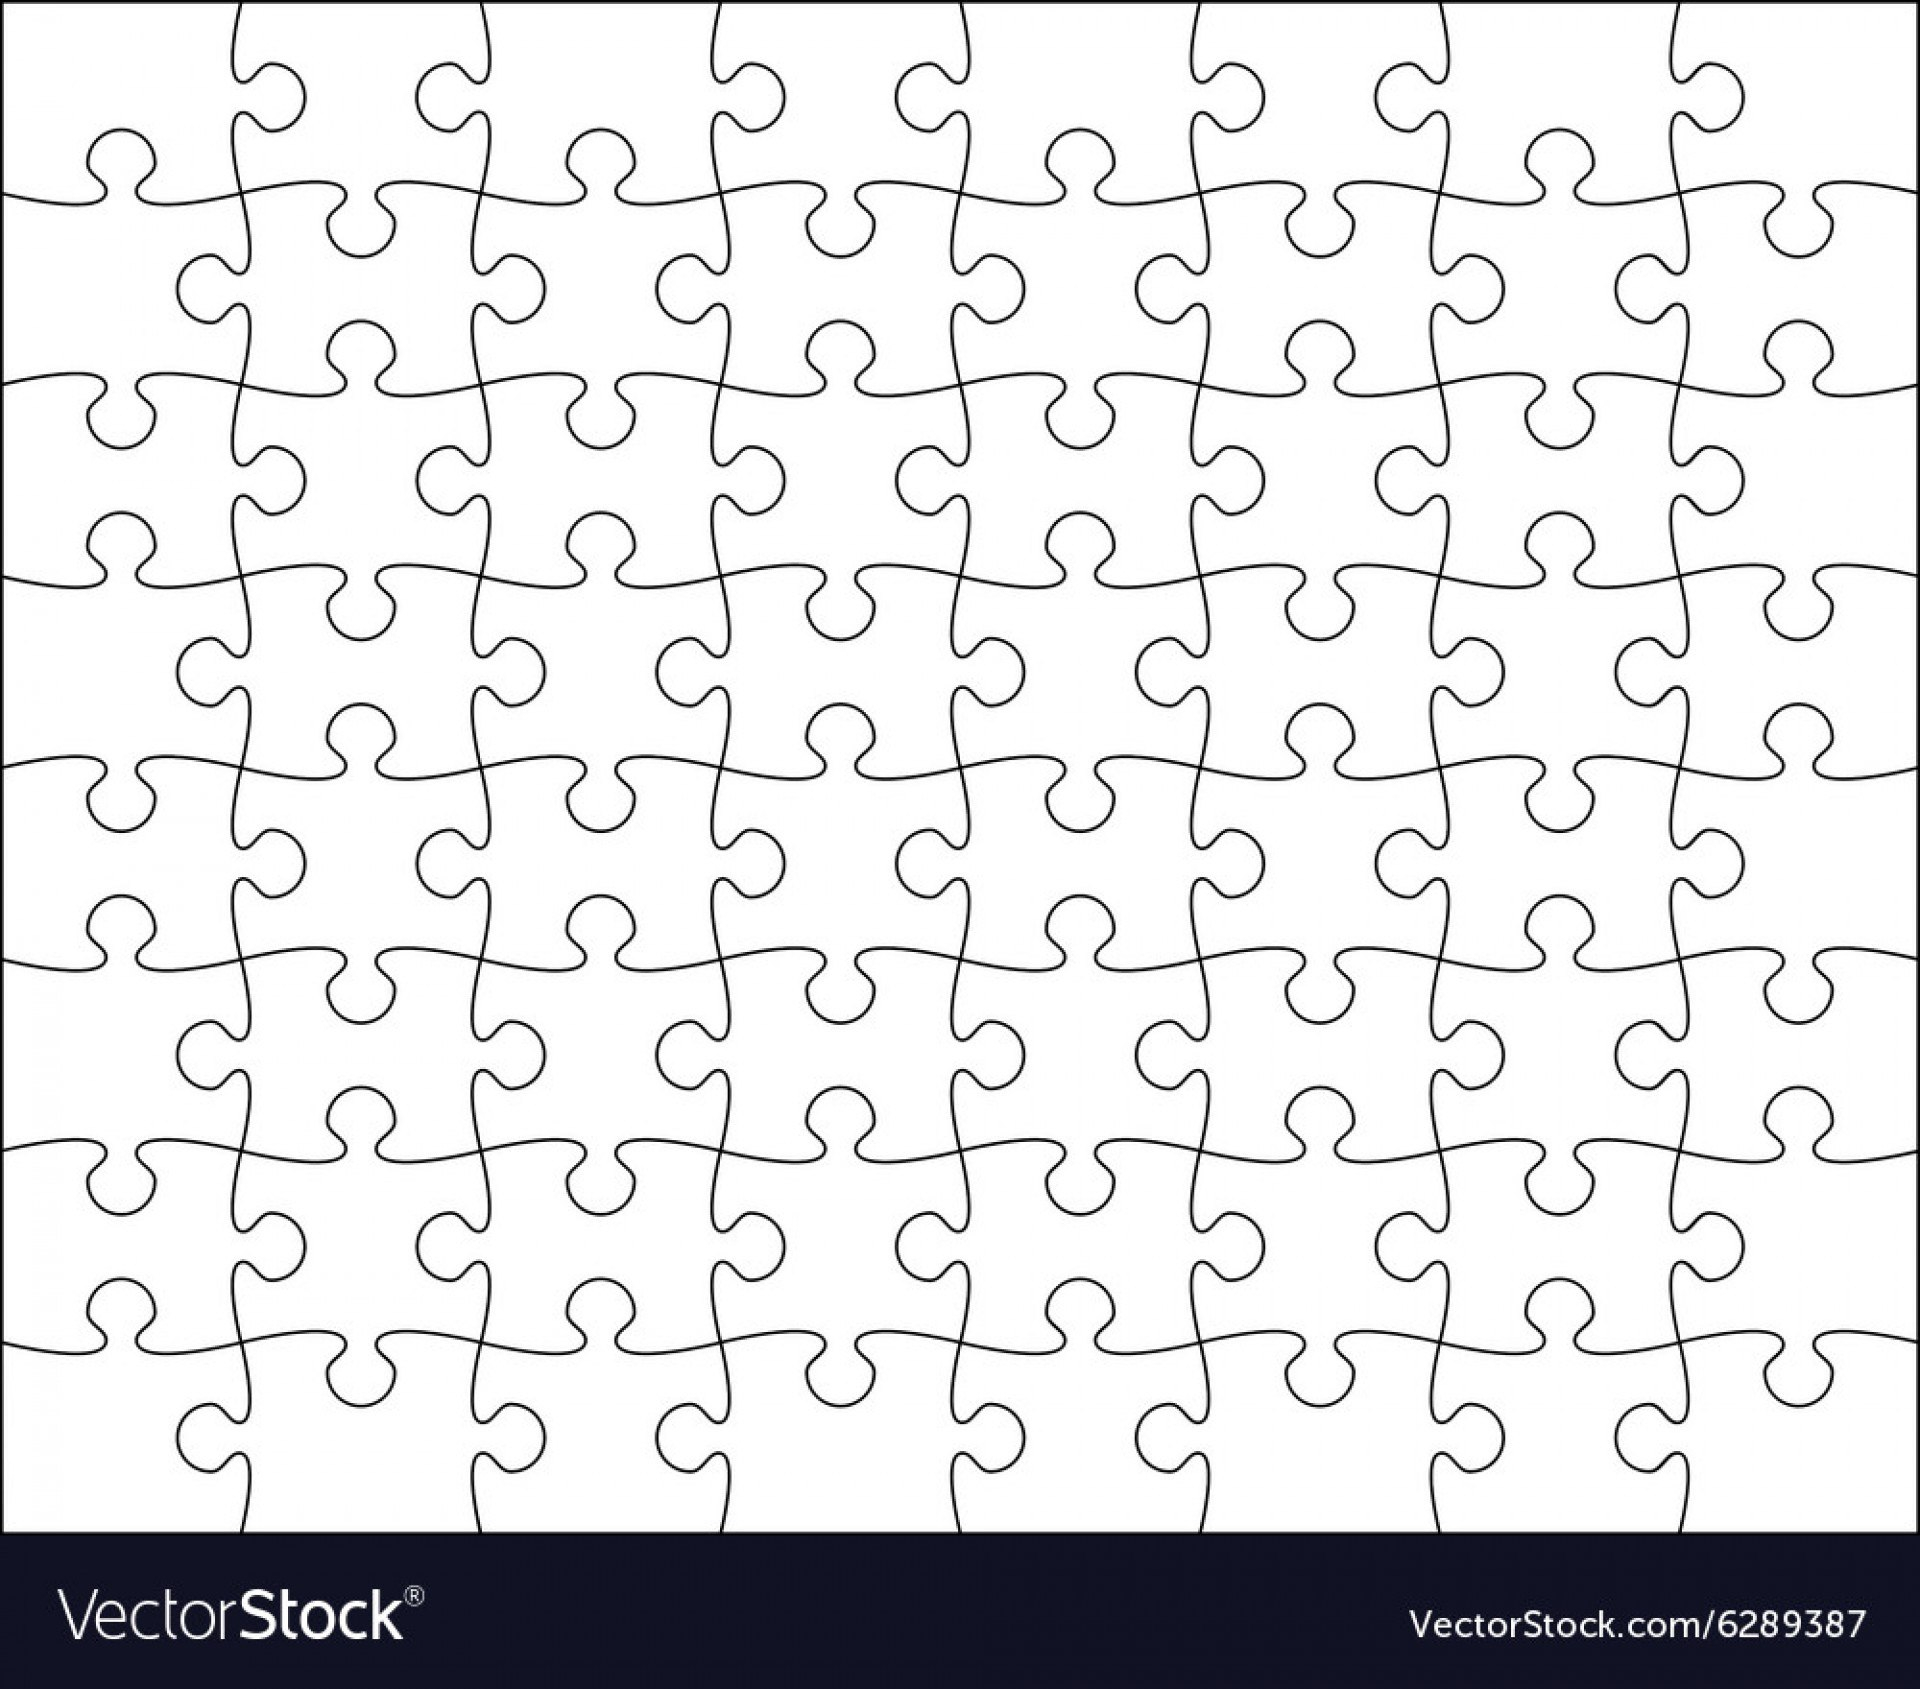 Jig Saw Puzzle Template Jigsaw Blank Simple Best Ideas Regarding Jigsaw Puzzle Template For Word